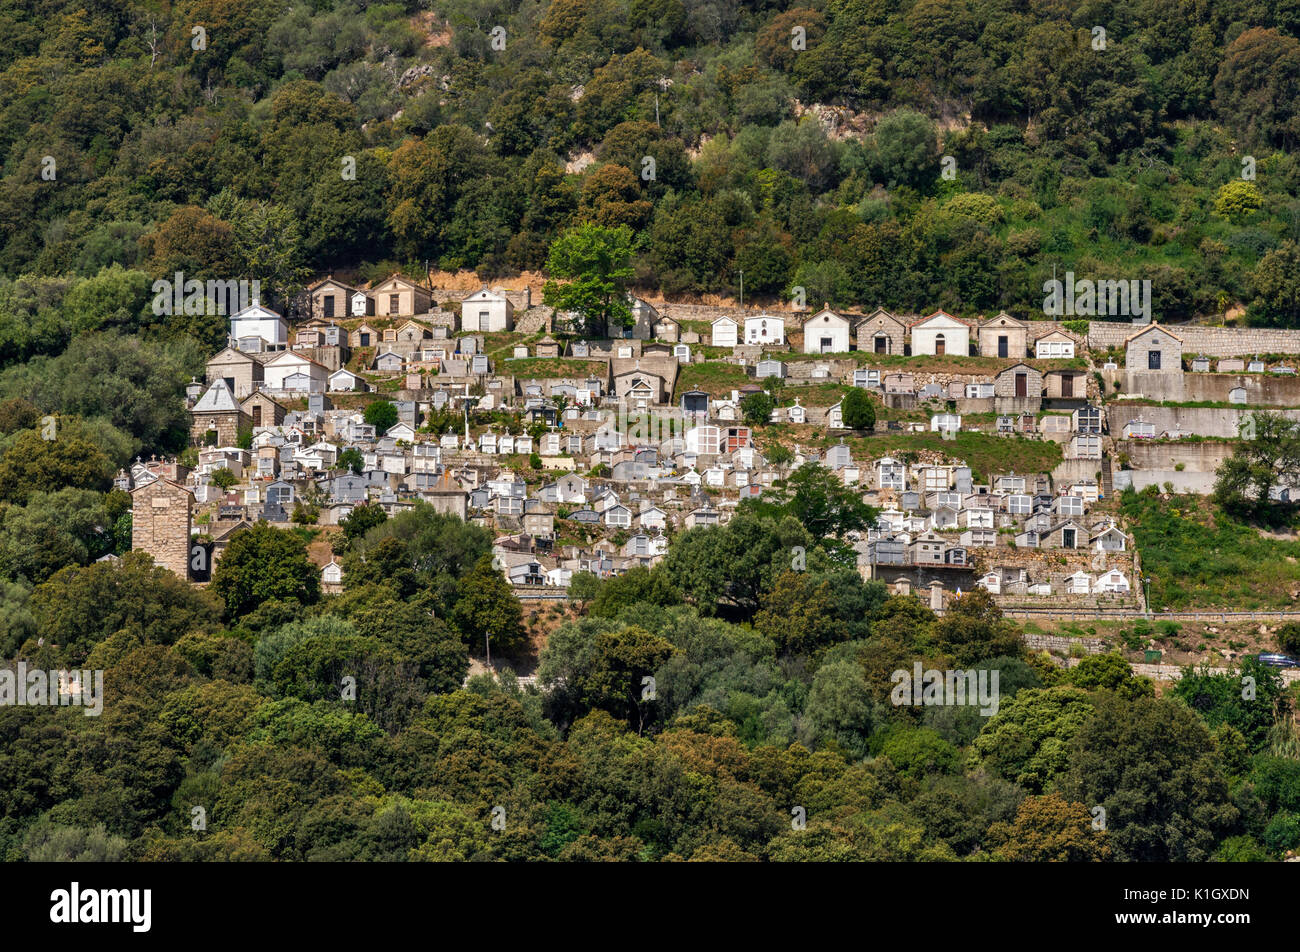 Cemetery at hill town of Olmeto on slope of Punta di Buturettu mountain, Corse-du-Sud, Corsica, France - Stock Image